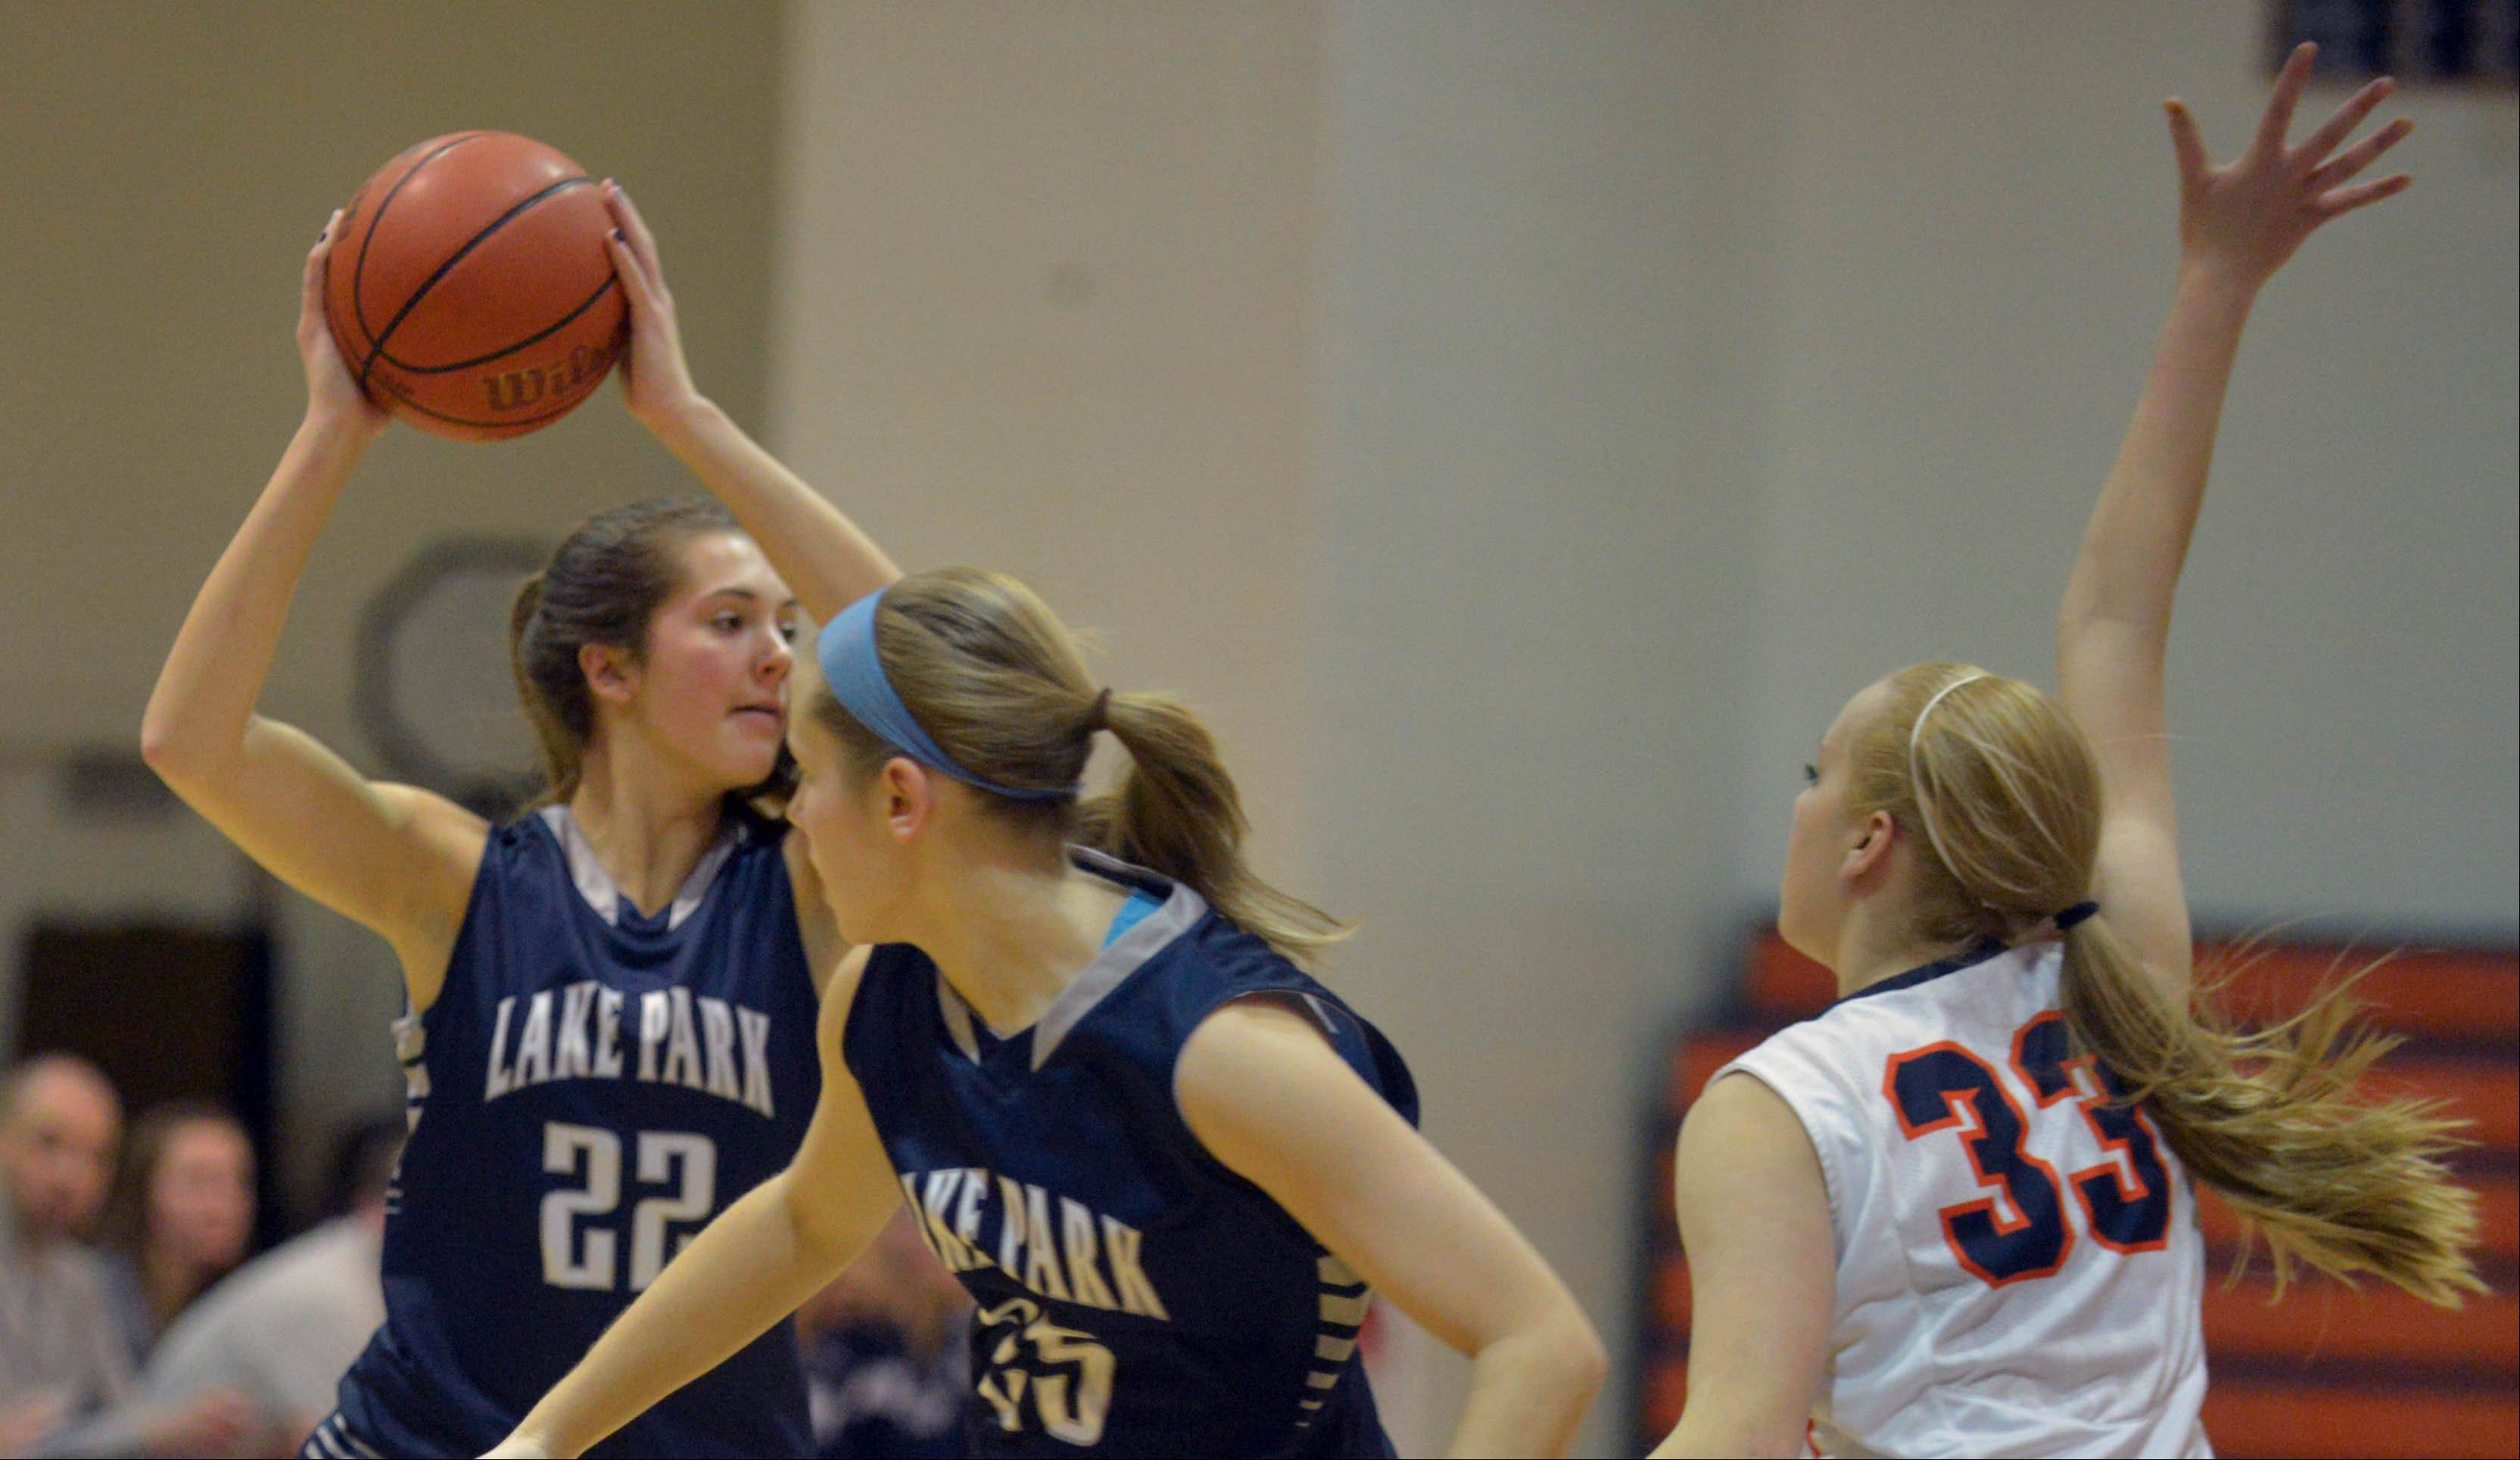 Alexis Pall of Lake Park looks for an open teammate while her fellow player Abbie Zastawny moves around Katie Cores of Naperville North.